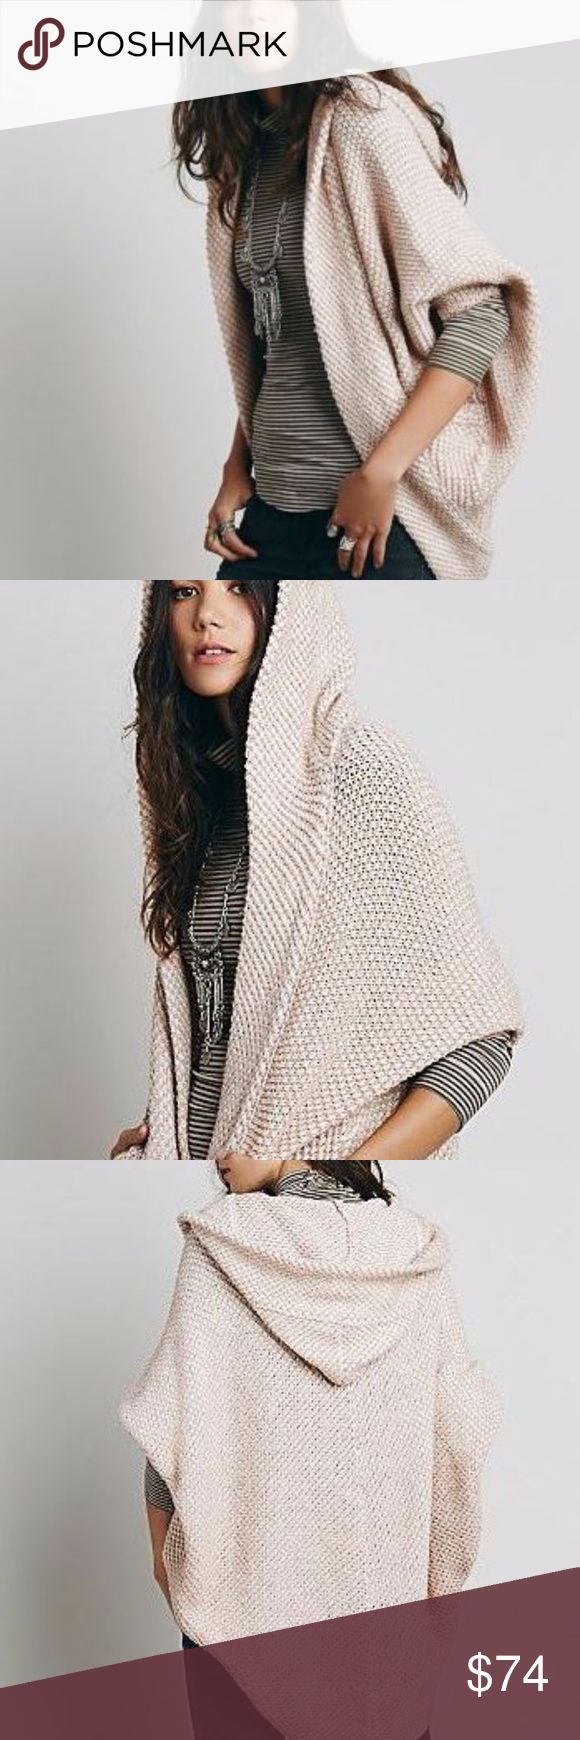 "Free People Coco Cocoon Cardigan Pink White M NEW A hooded Free People cardigan with dramatic batwing sleeves. Draped open placket. 2 front pockets. A toasty hood and cocoon silhouette define the allure of this must-have cardigan from Free People. Layer this textured topper over a basic tee and off-duty denim for a comfy-cozy, casual look. - Fixed hood, long dolman sleeves, open silhouette - Textured, cutaway front, rounded back he  - 49% acrylic/28% cotton/23% wool.  Size M Shoulder: 24""…"